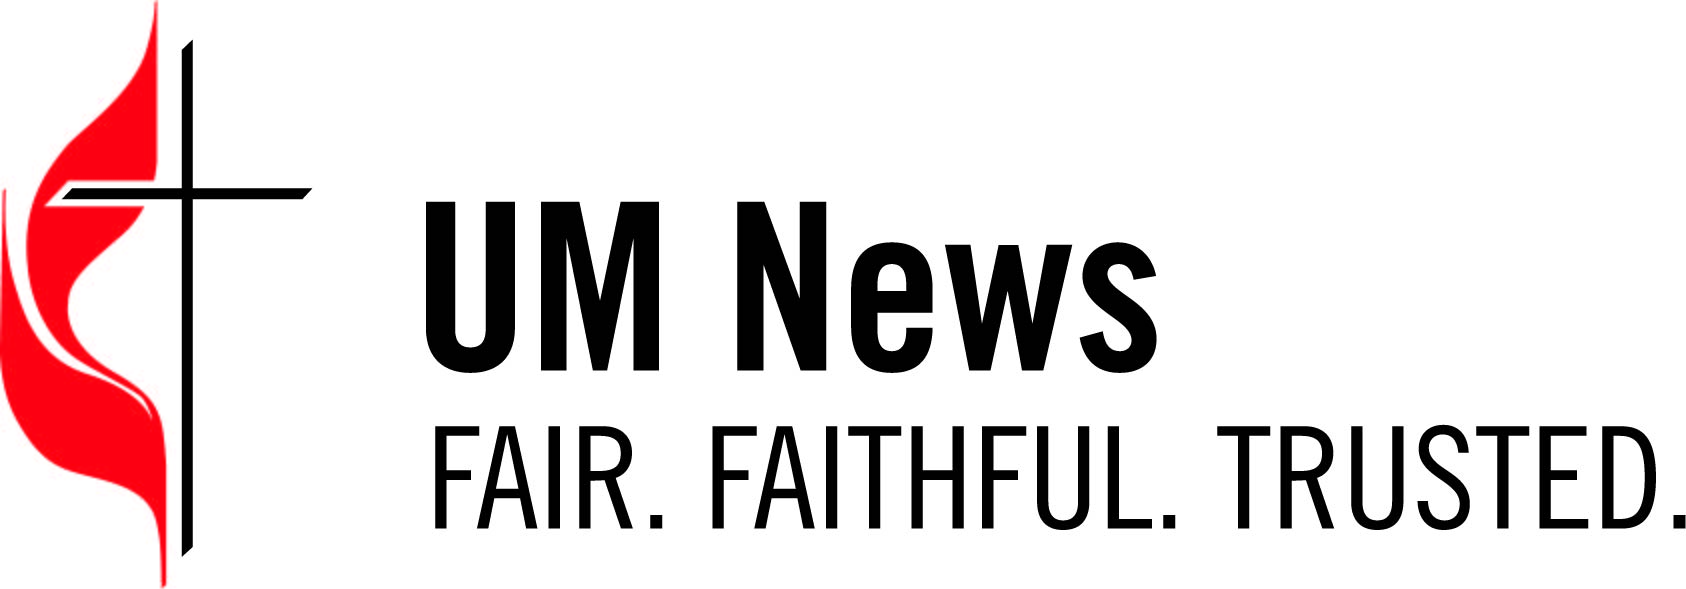 2018 revised logo for the UM News. File type is JPEG. Black type and cross, red flame on white background. Designed by Troy Dossett